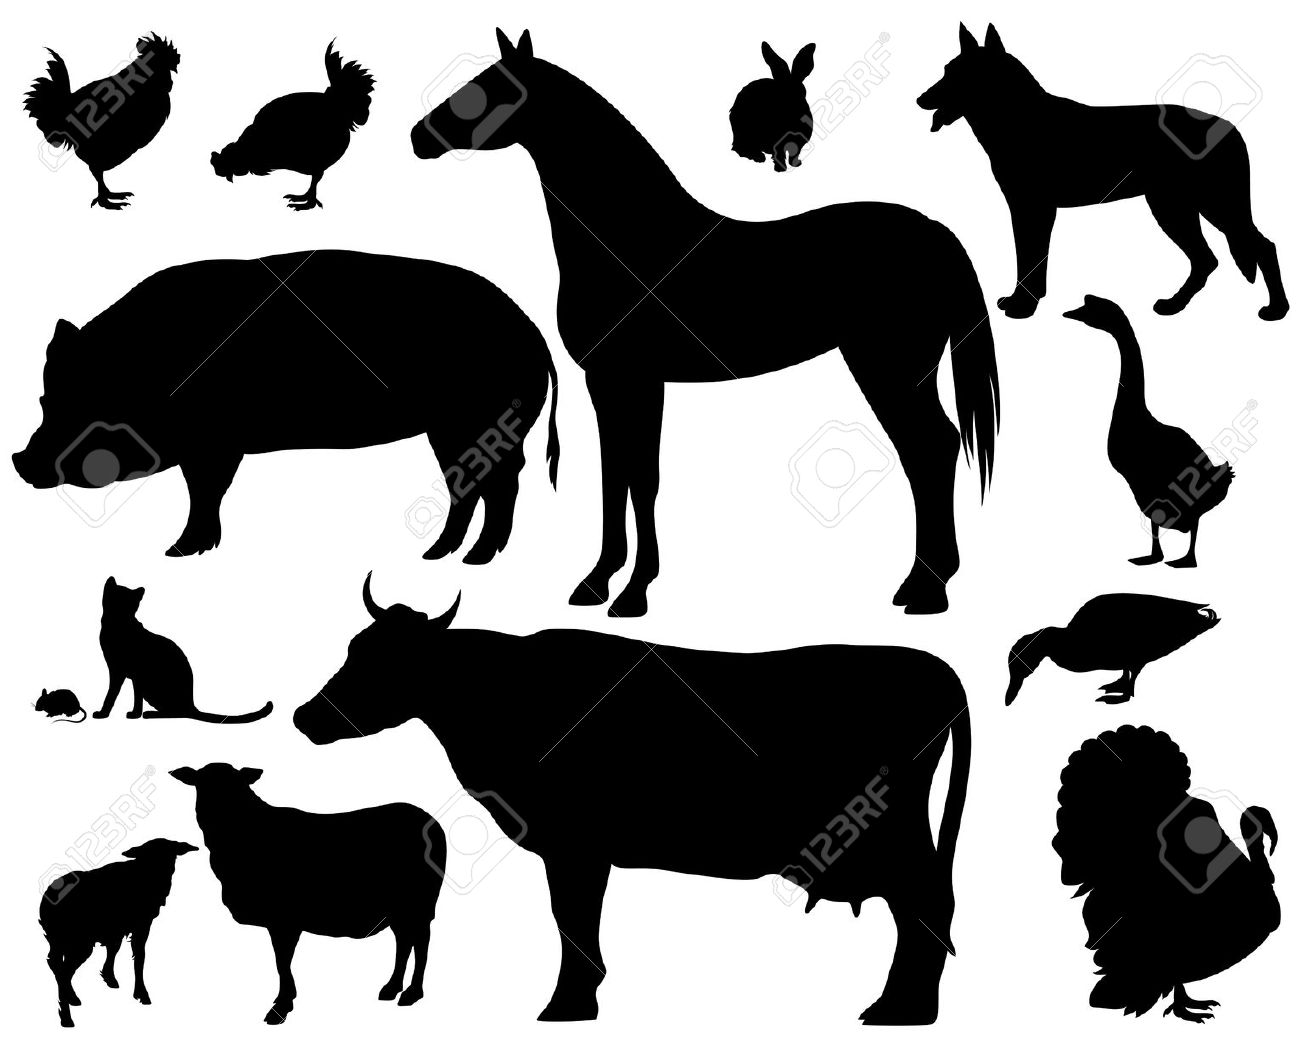 Realistic Animal Silhouette Clipart.